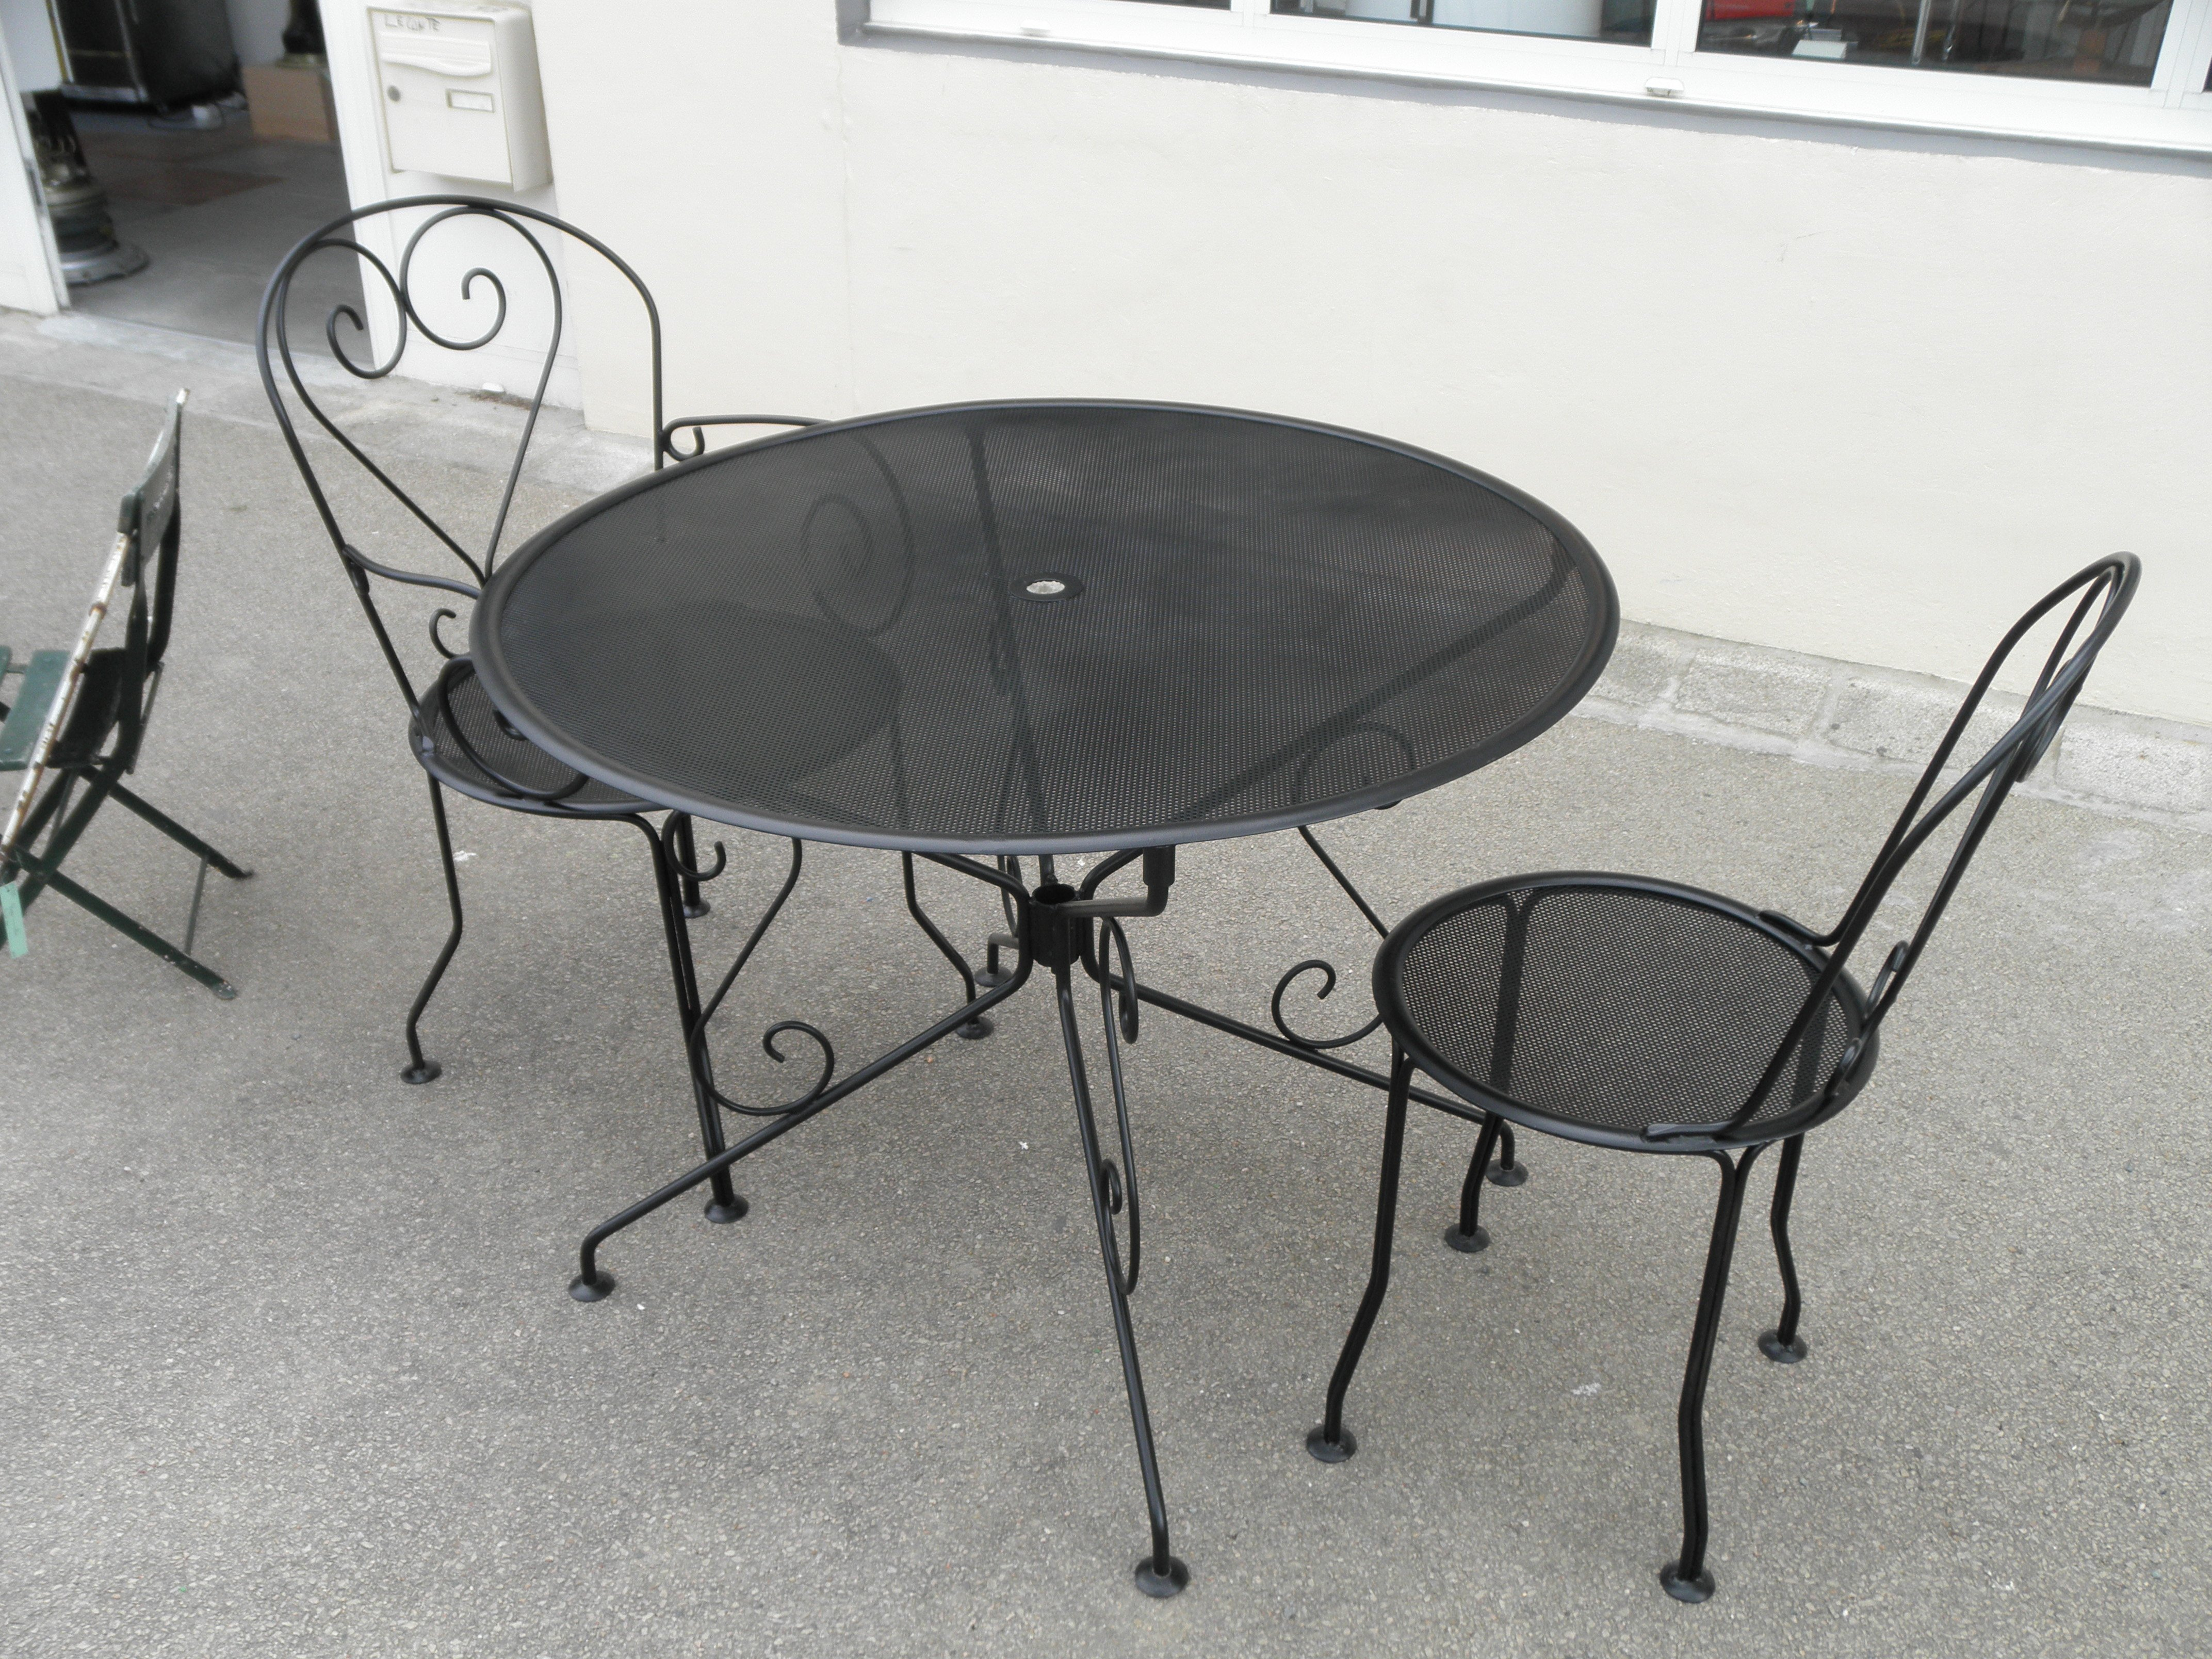 Salon de jardin table ronde fer forg achat salon de - Salon de jardin en fer colore ...